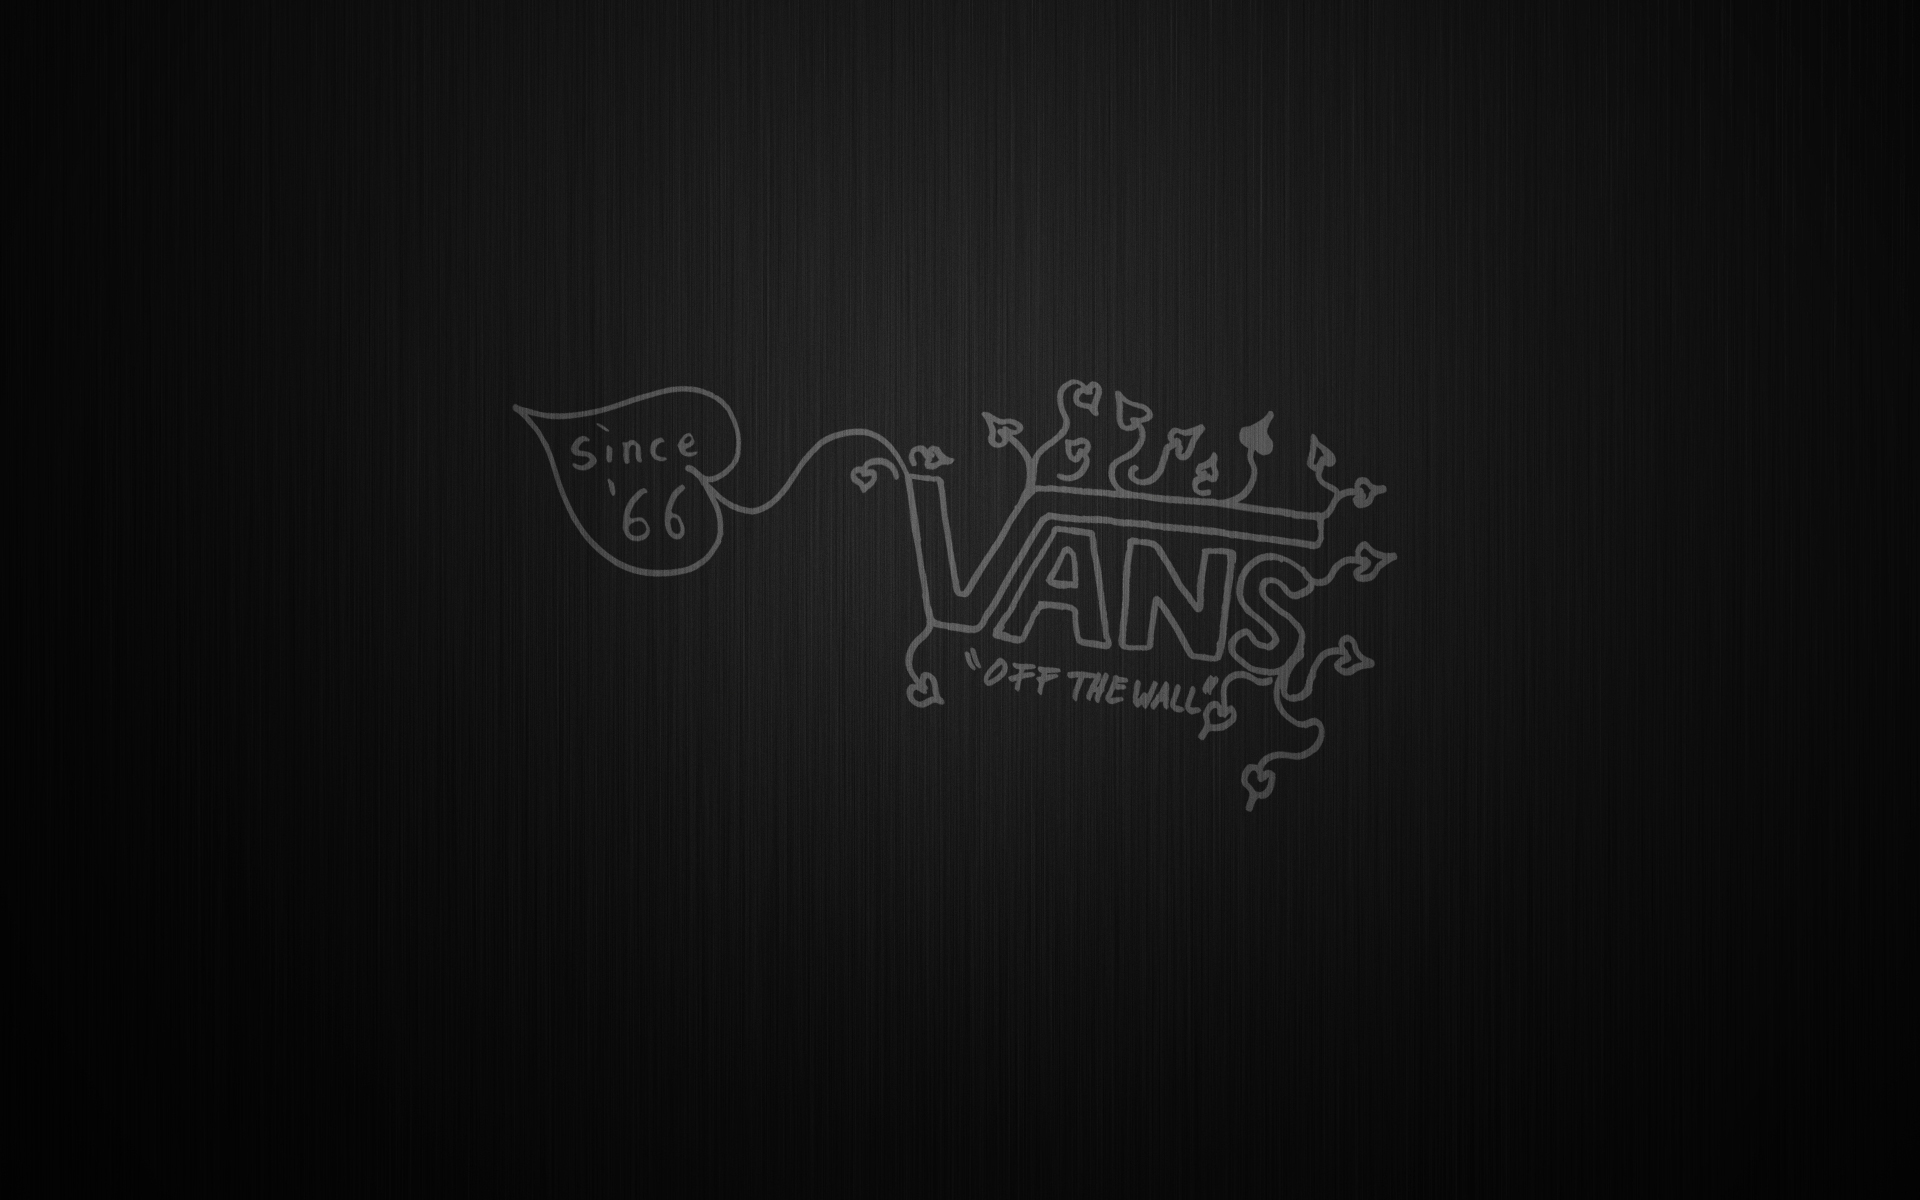 Vans Logo Wallpaper Tumblr Images Pictures   Becuo 1920x1200